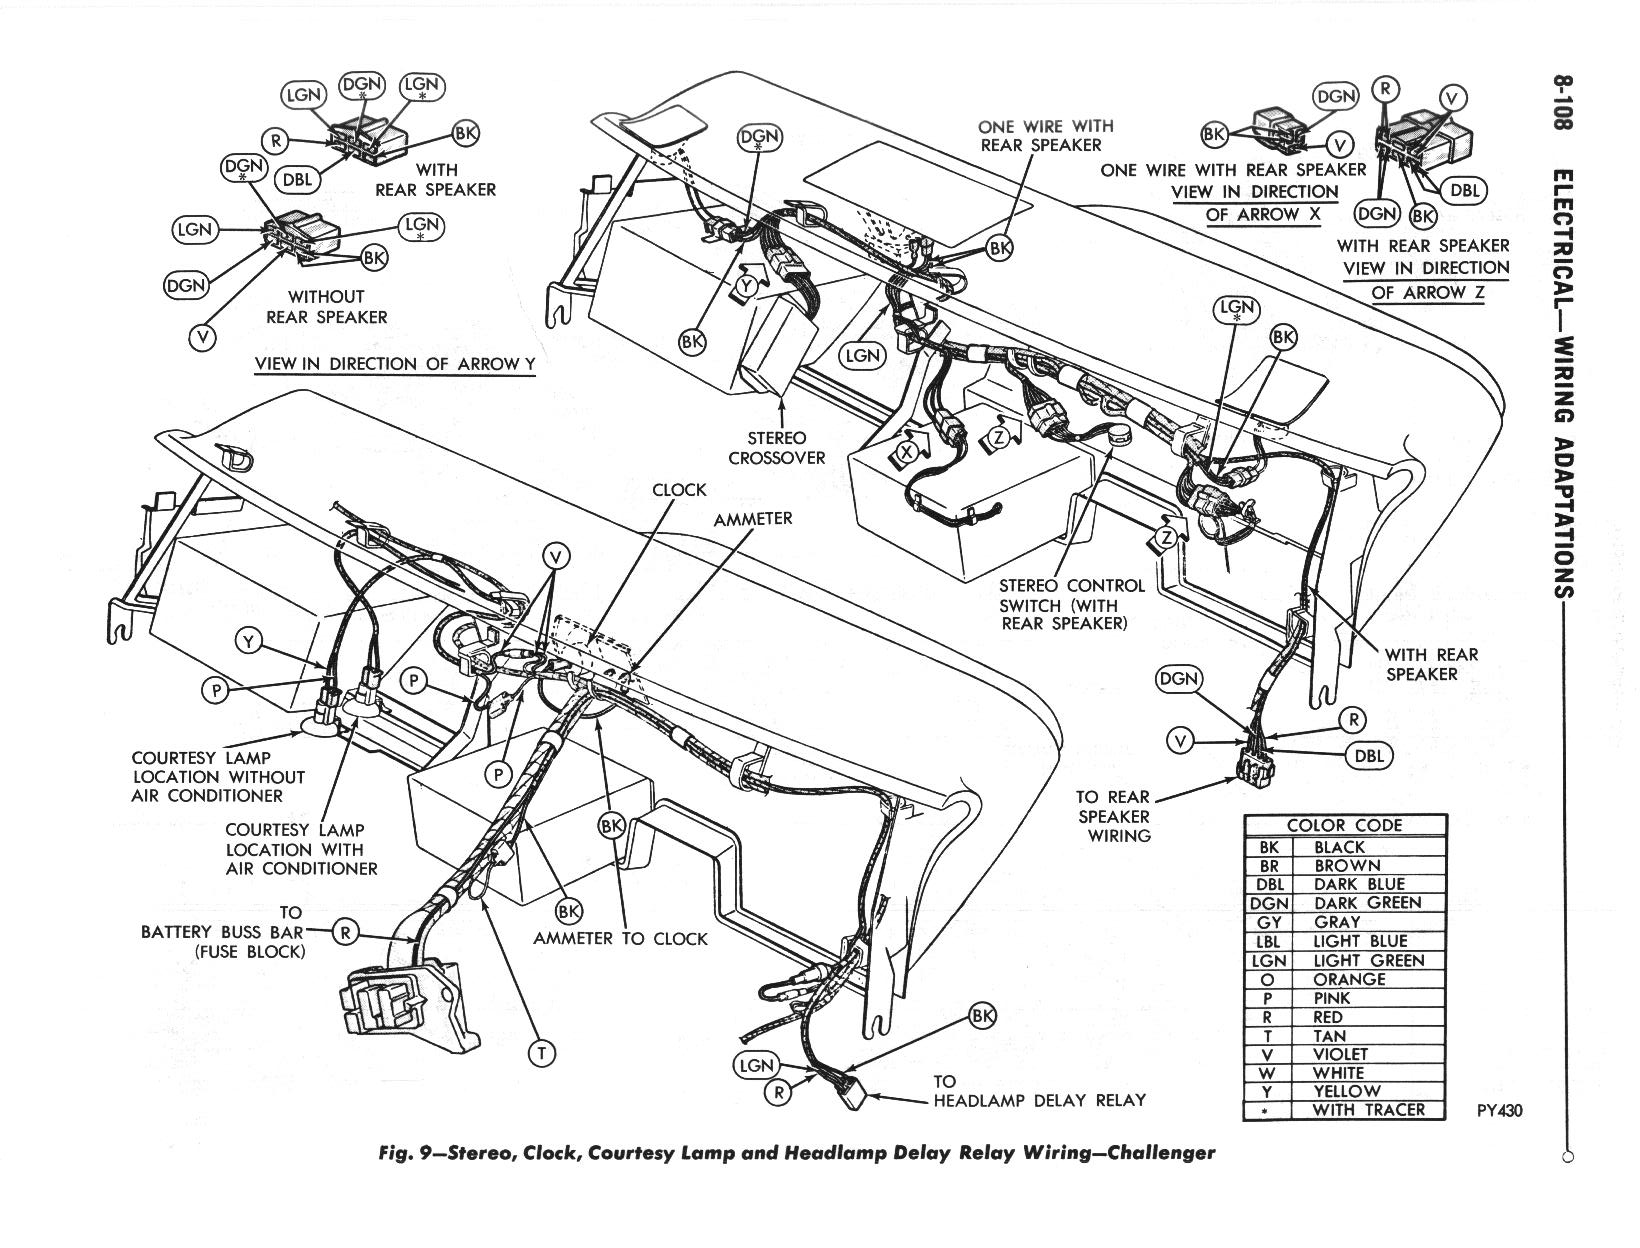 1784_0_GRP8_108 1970 challenger wiring diagrams \u2022 the dodge challenger message board 1970 dodge challenger wiring diagram at bayanpartner.co